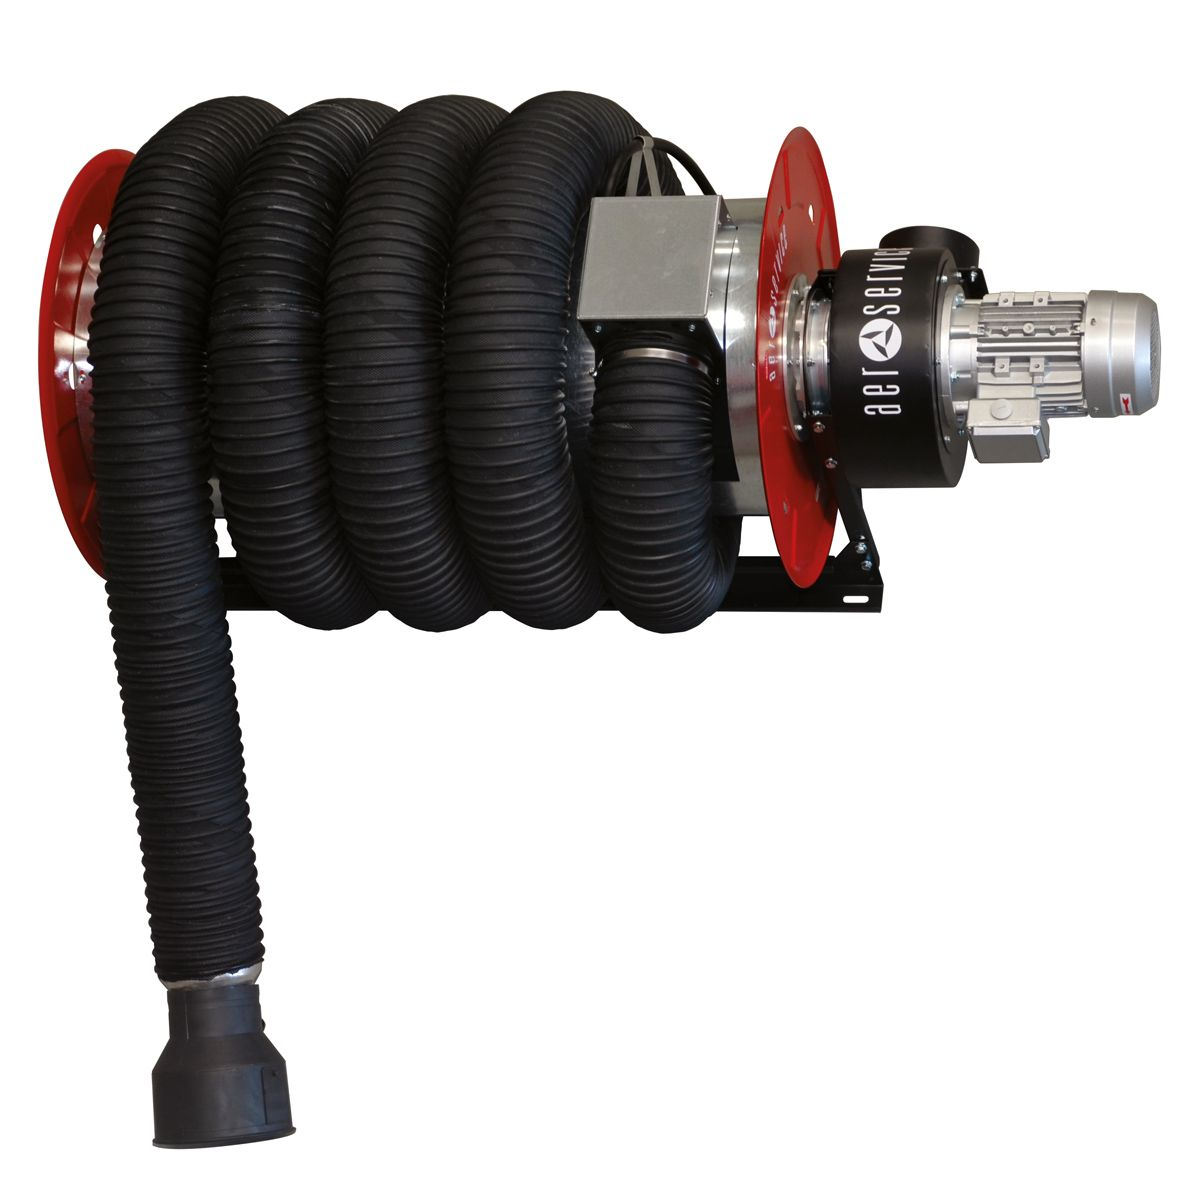 SIP ARHV Wall-Mounted 100mm Hose Reel 400v